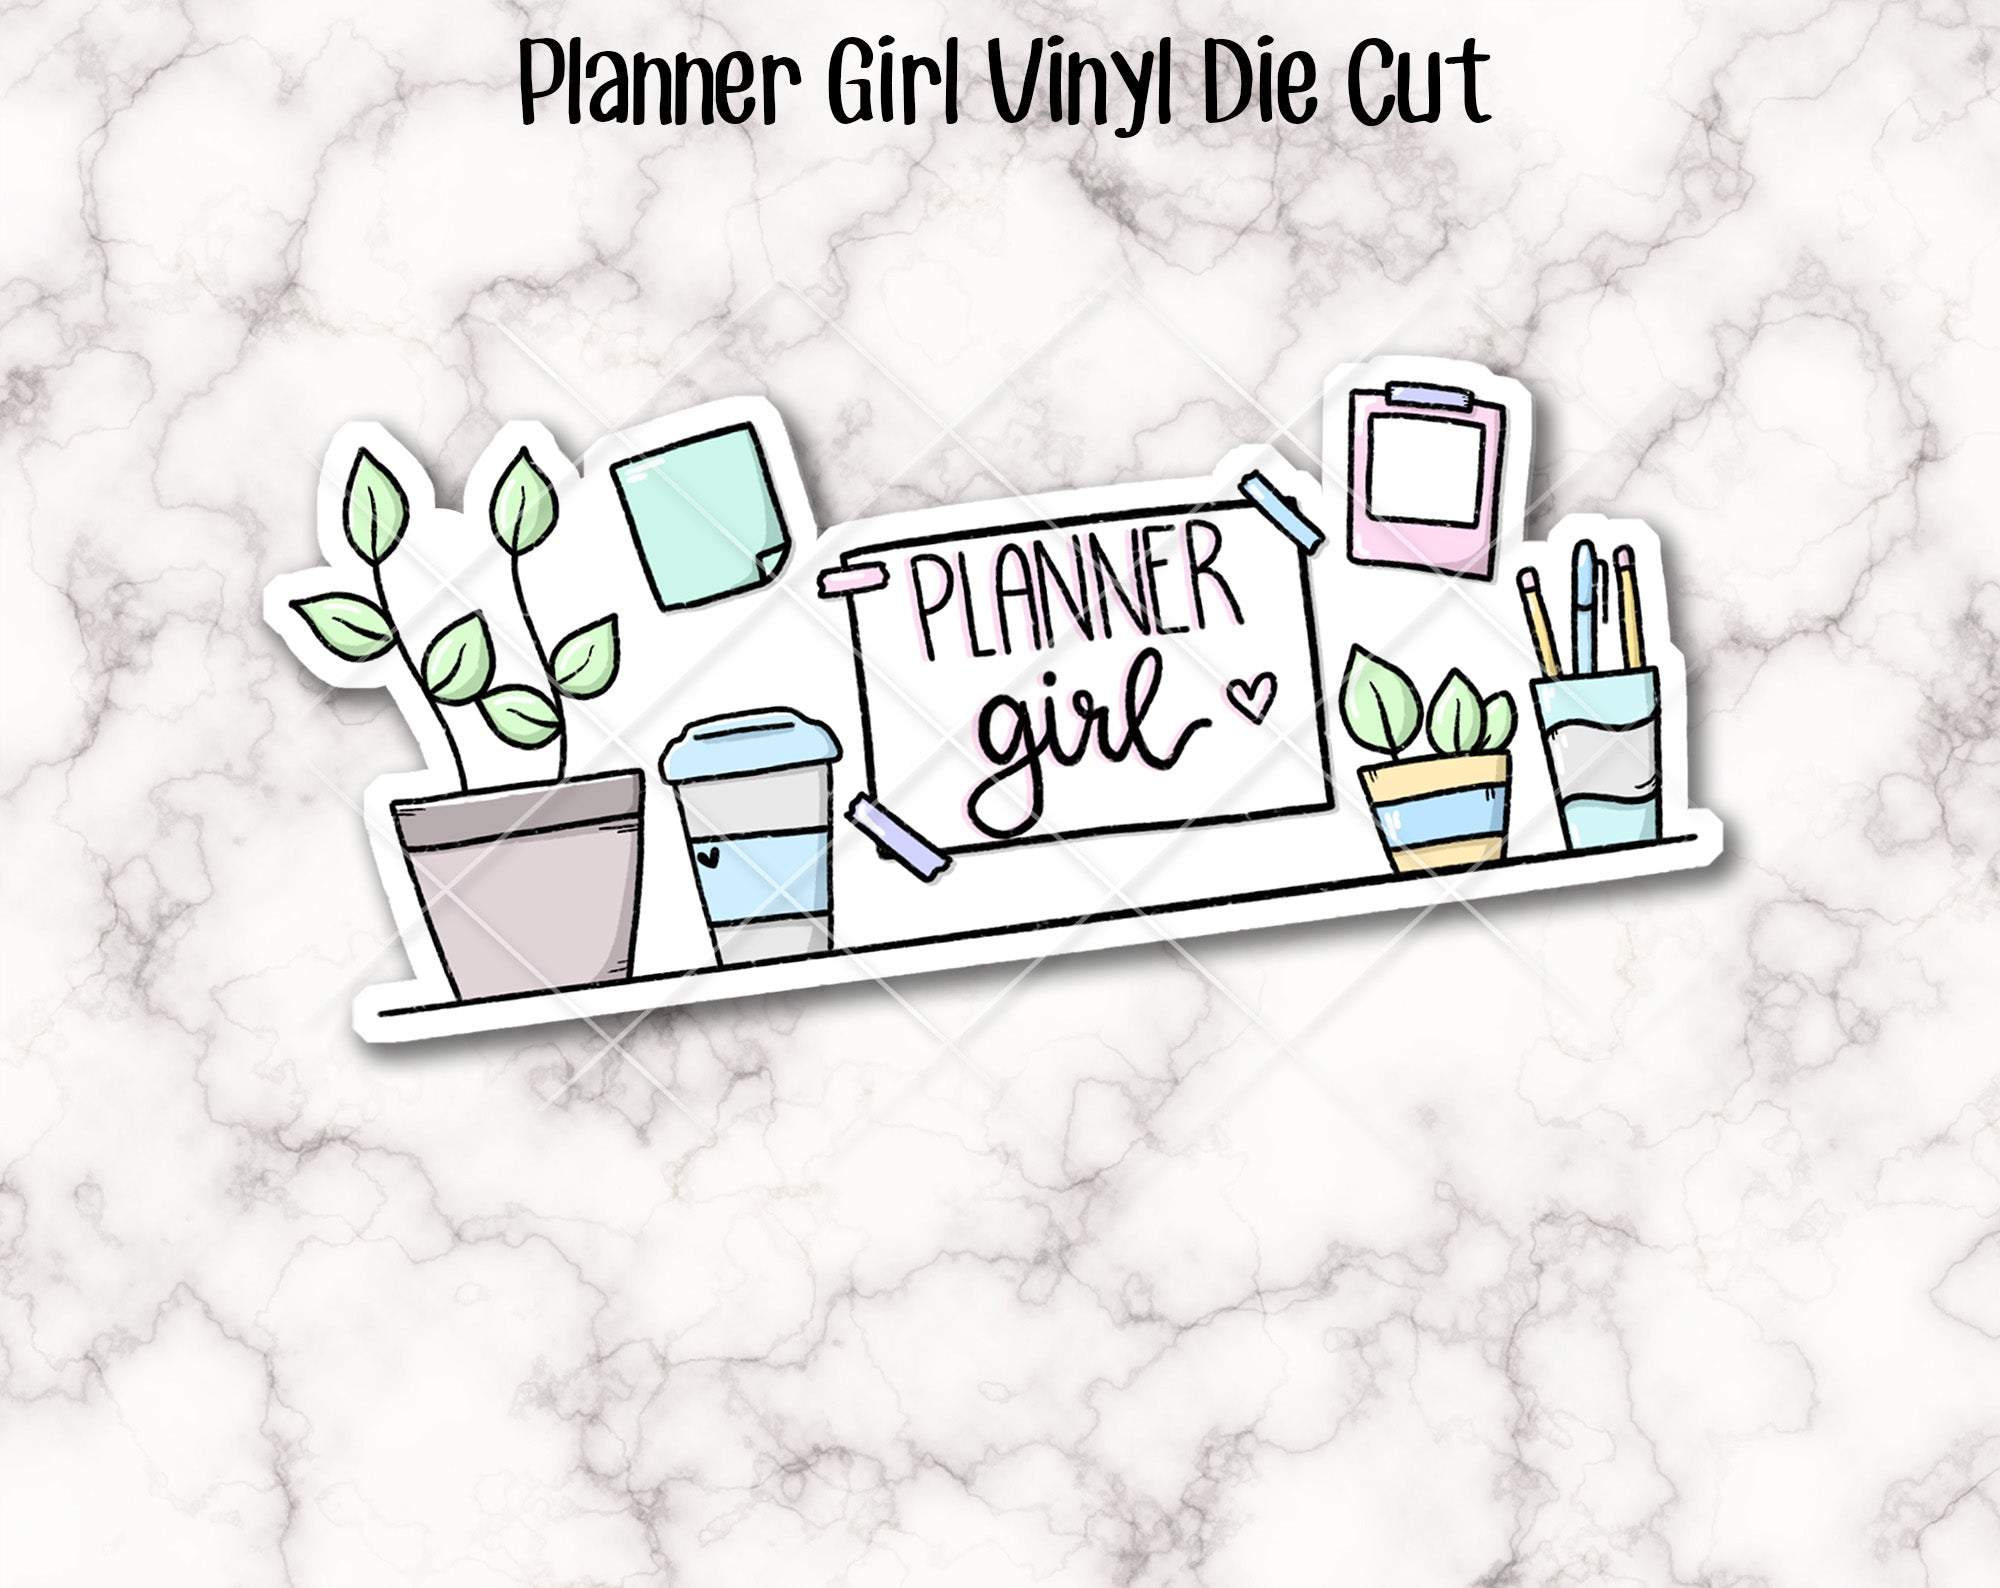 VINYL DIE CUT -  Planner Girl Vinyl Die Cut - perfect accessory for your planner, travellers notebook, bookmark, laptop, water bottle etc